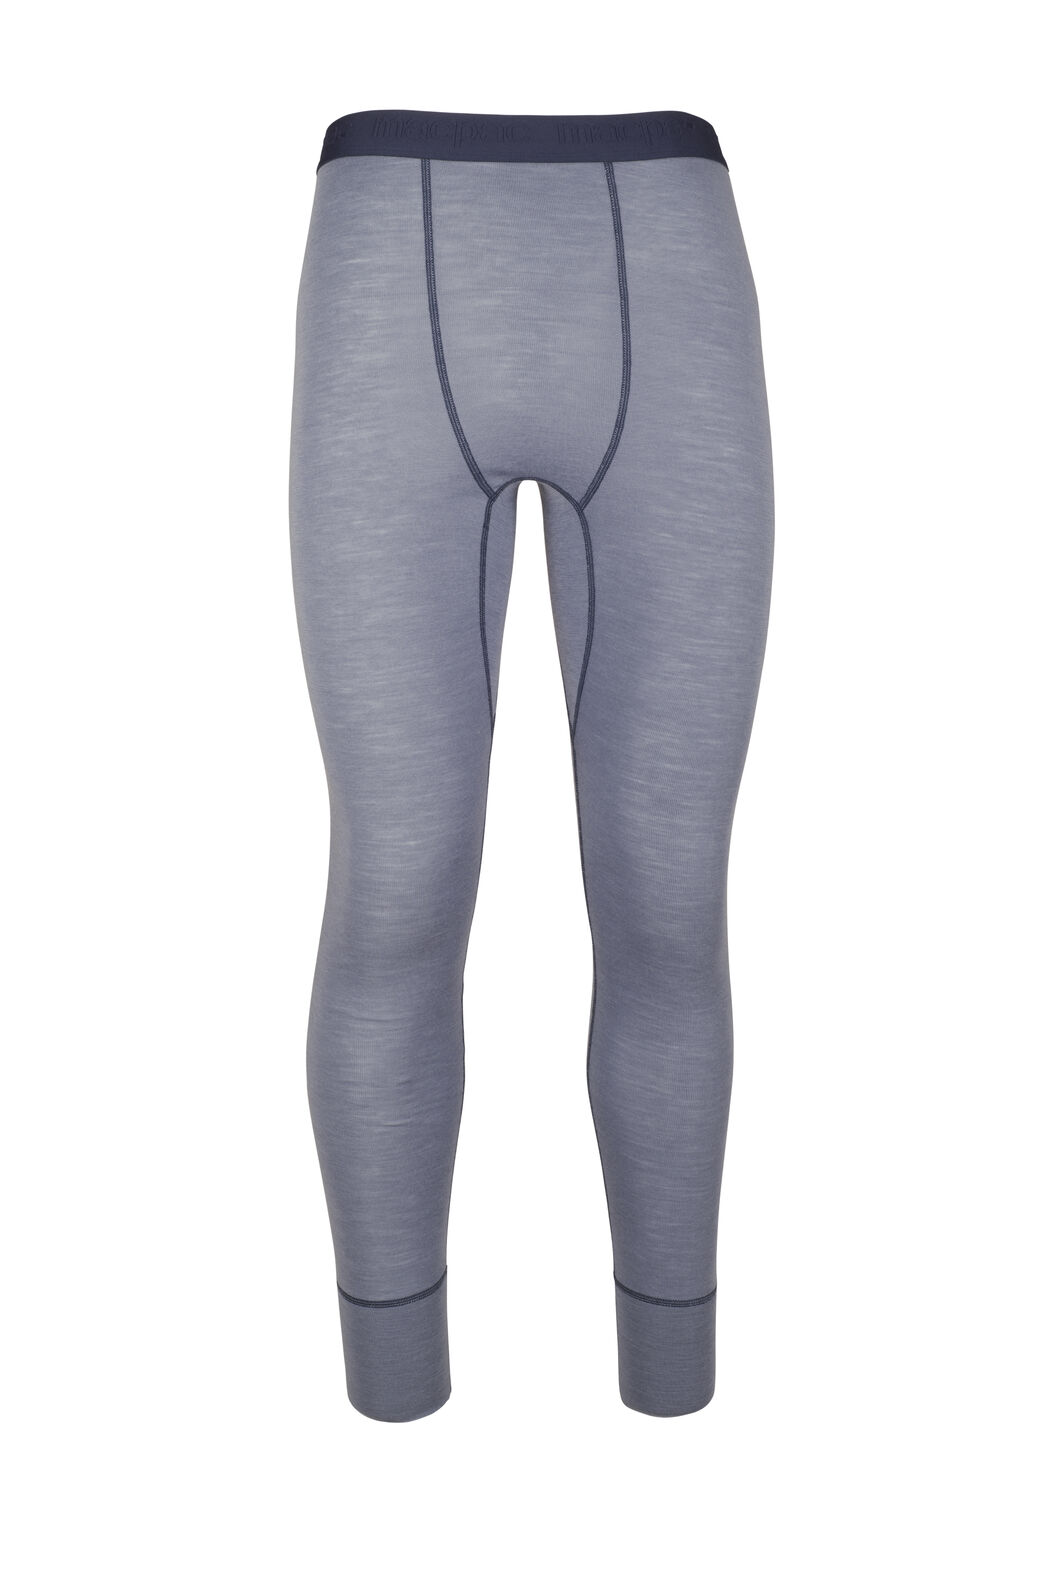 Macpac 220 Merino Long Johns - Men's, Flint Stone, hi-res